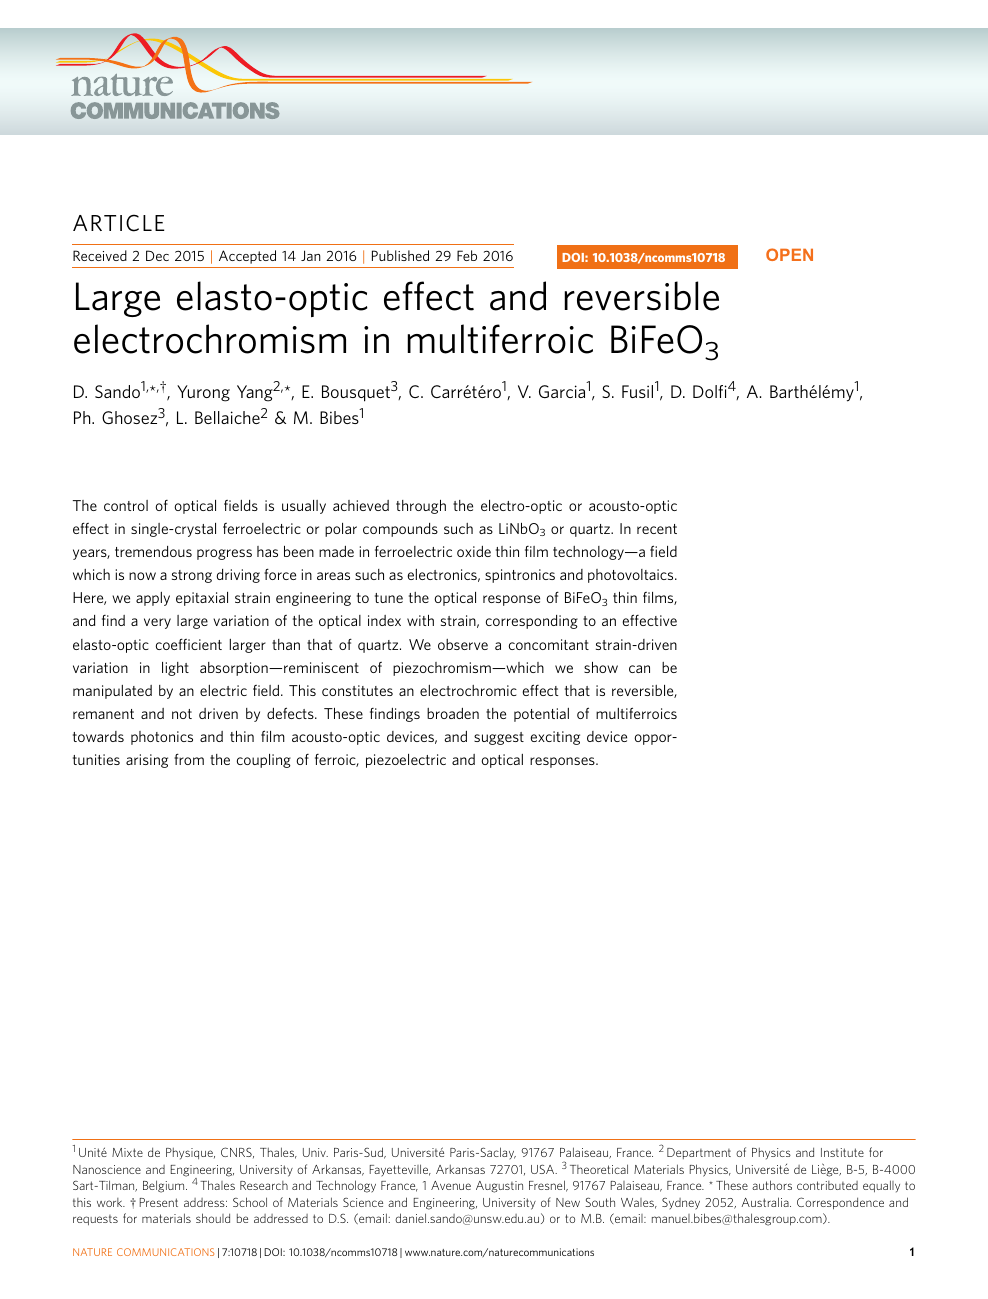 Large elasto-optic effect and reversible electrochromism in